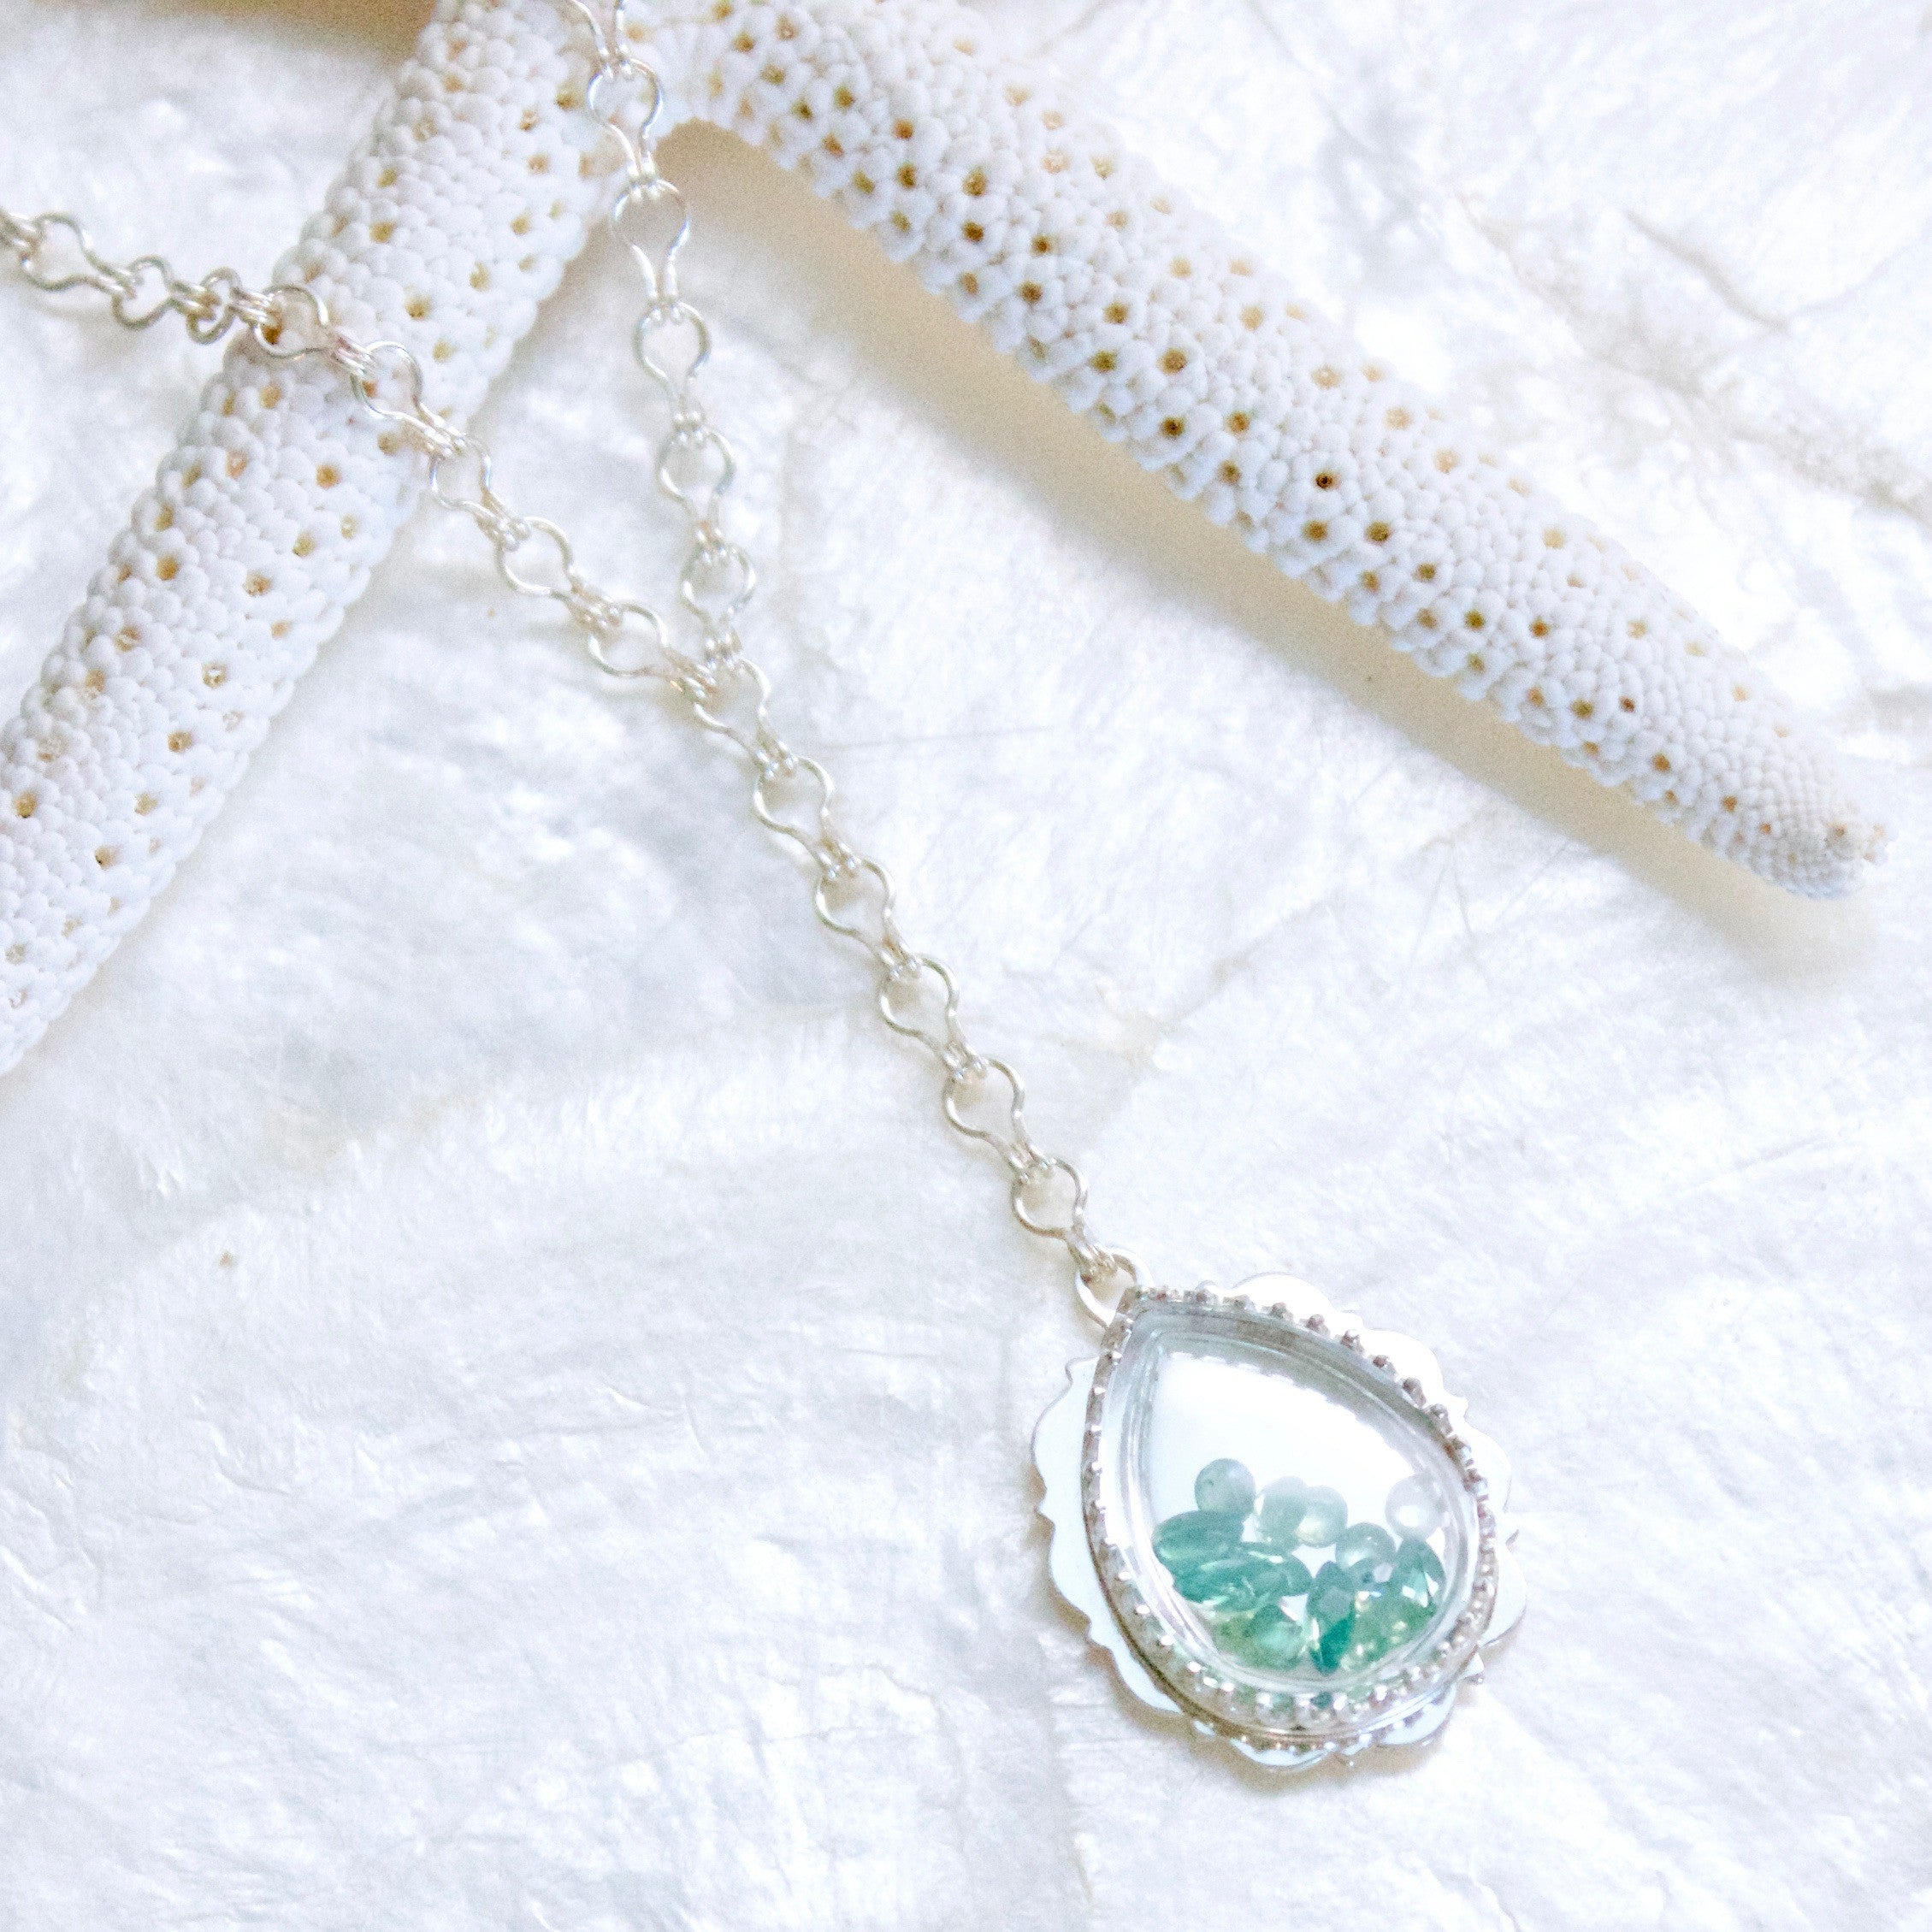 june blarney necklace womens stone quotblarney march alexandrite stonequot birthstone elegant of cz jewelry quot lovely ring